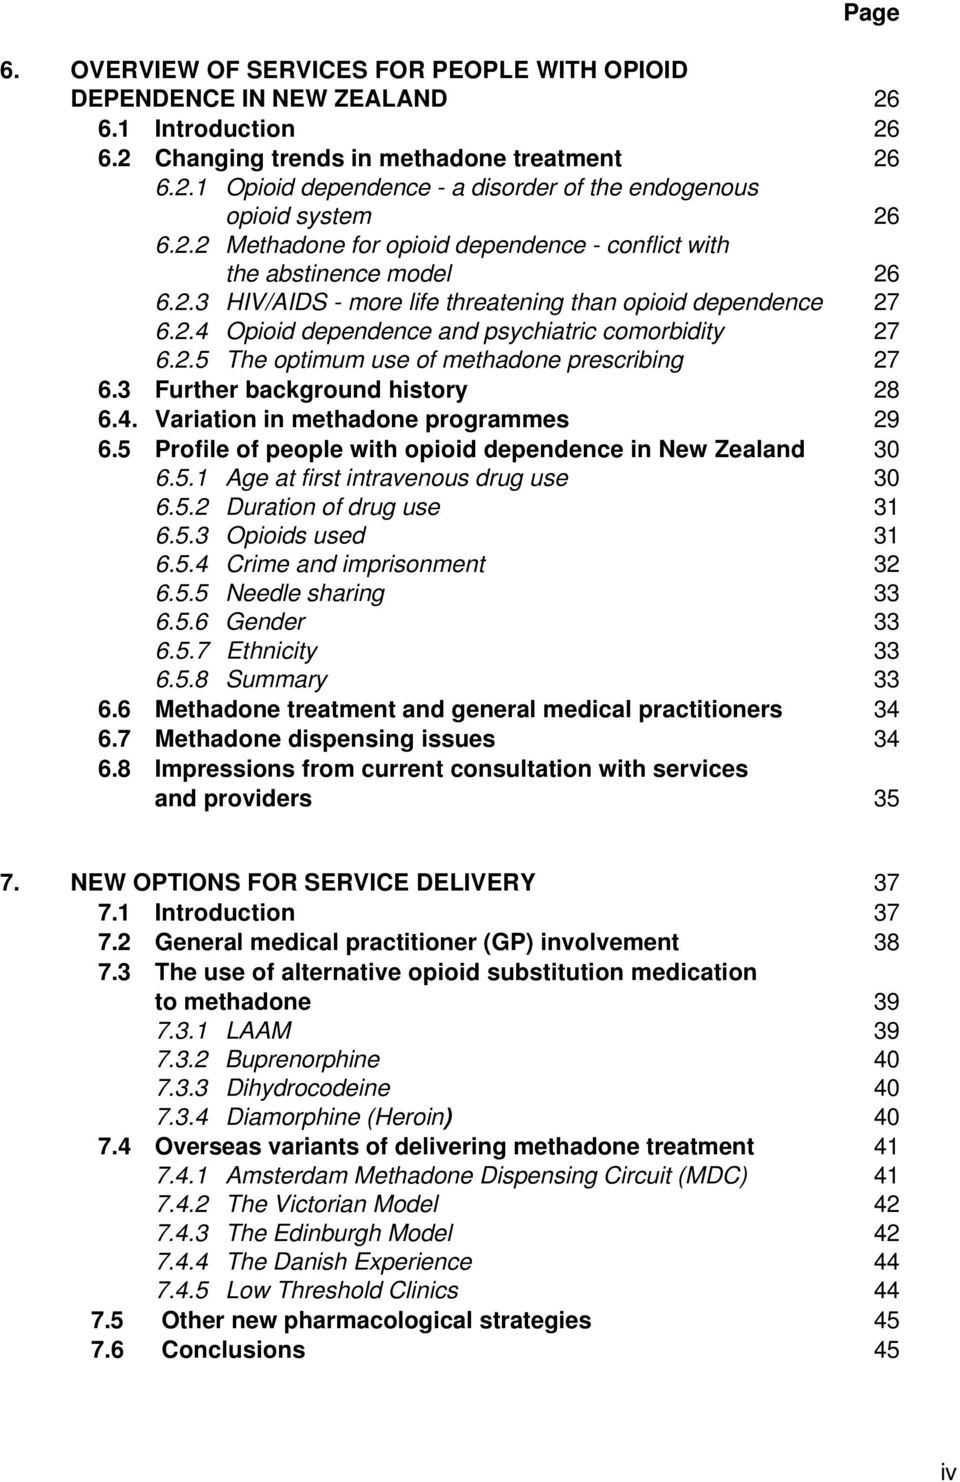 3 Further background history 28 6.4. Variation in methadone programmes 29 6.5 Profile of people with opioid dependence in New Zealand 30 6.5.1 Age at first intravenous drug use 30 6.5.2 Duration of drug use 31 6.